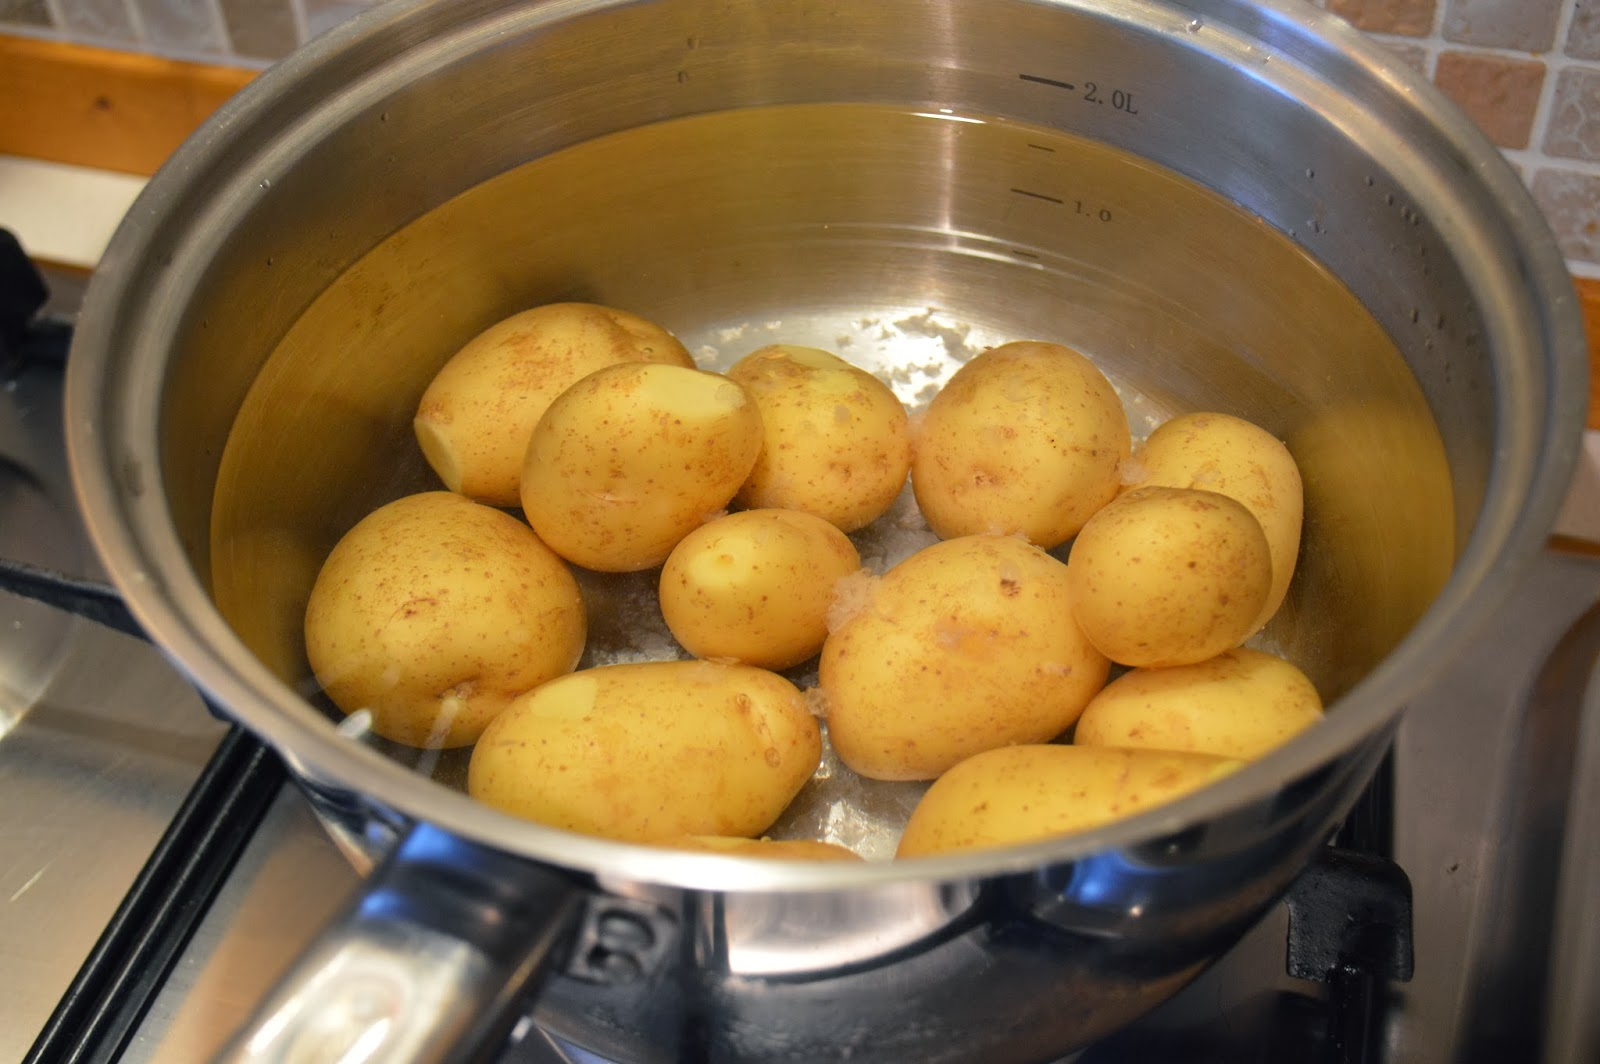 Boil the potatoes with coarse sea salt.